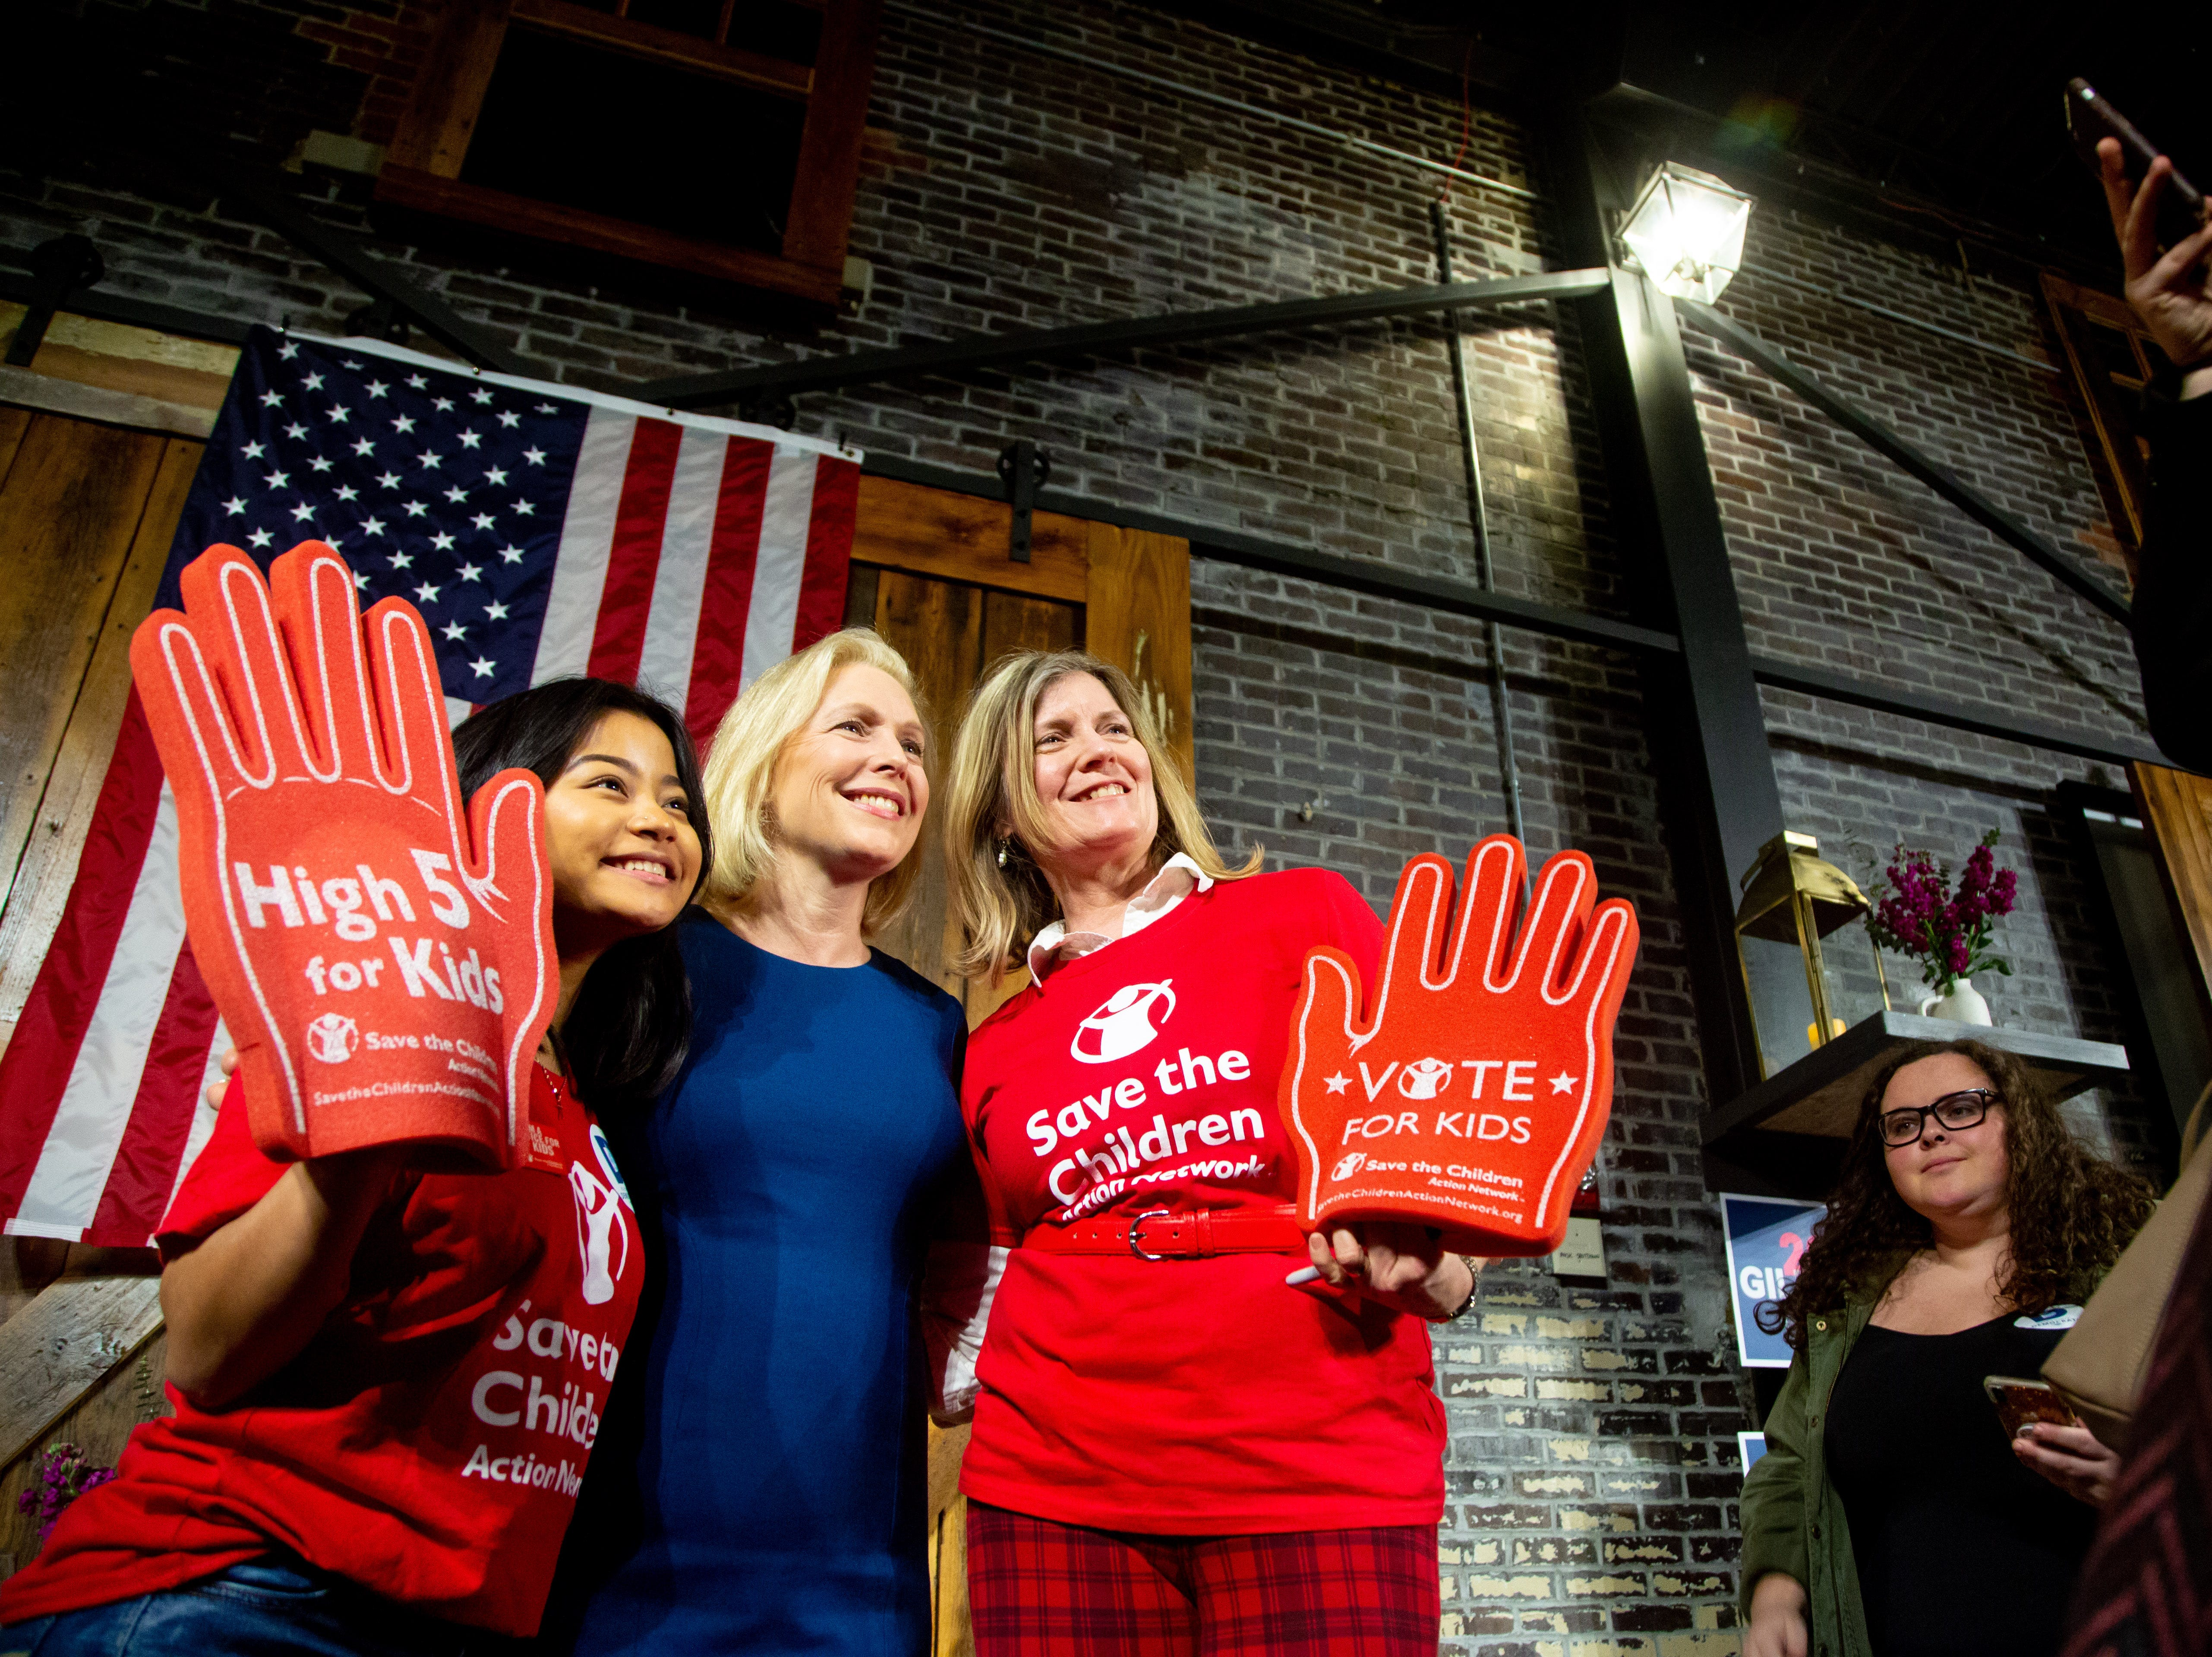 Democratic presidential candidate Sen. Kirsten Gillibrand, D-N.Y., takes a photo with Vanny Hlawn, 15, of Urbandale and Jen Statler of Ankney after a town hall in Des Moines Wednesday, March 20, 2019.